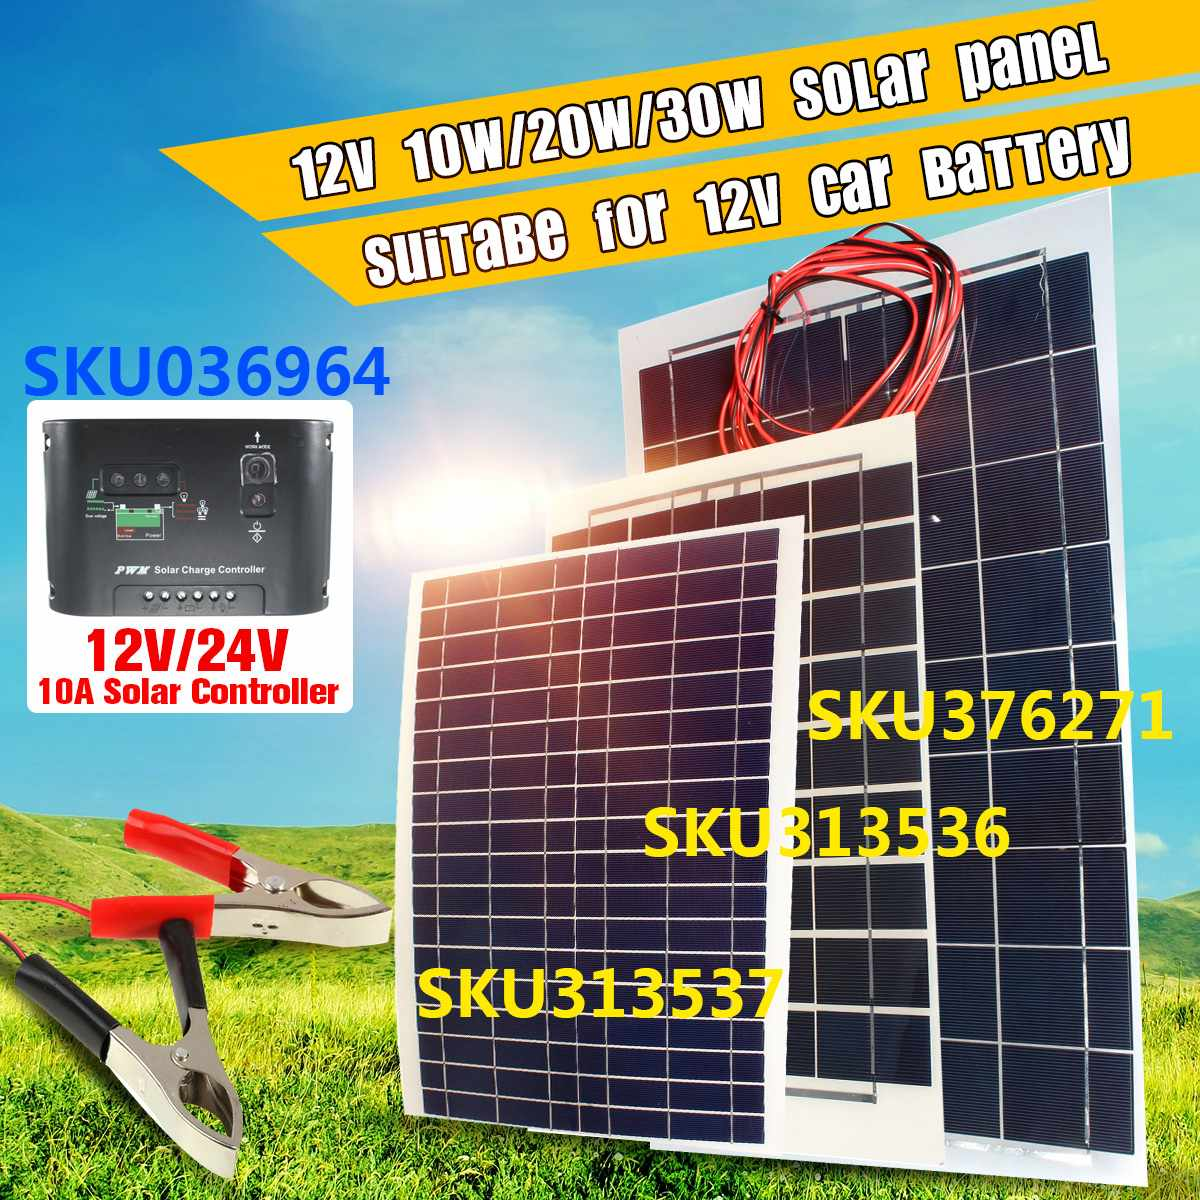 Cable 30W 12V Semi Flexible Solar Panel Battery Charger  For RV Boat Motorhome for trickle battery productsCable 30W 12V Semi Flexible Solar Panel Battery Charger  For RV Boat Motorhome for trickle battery products